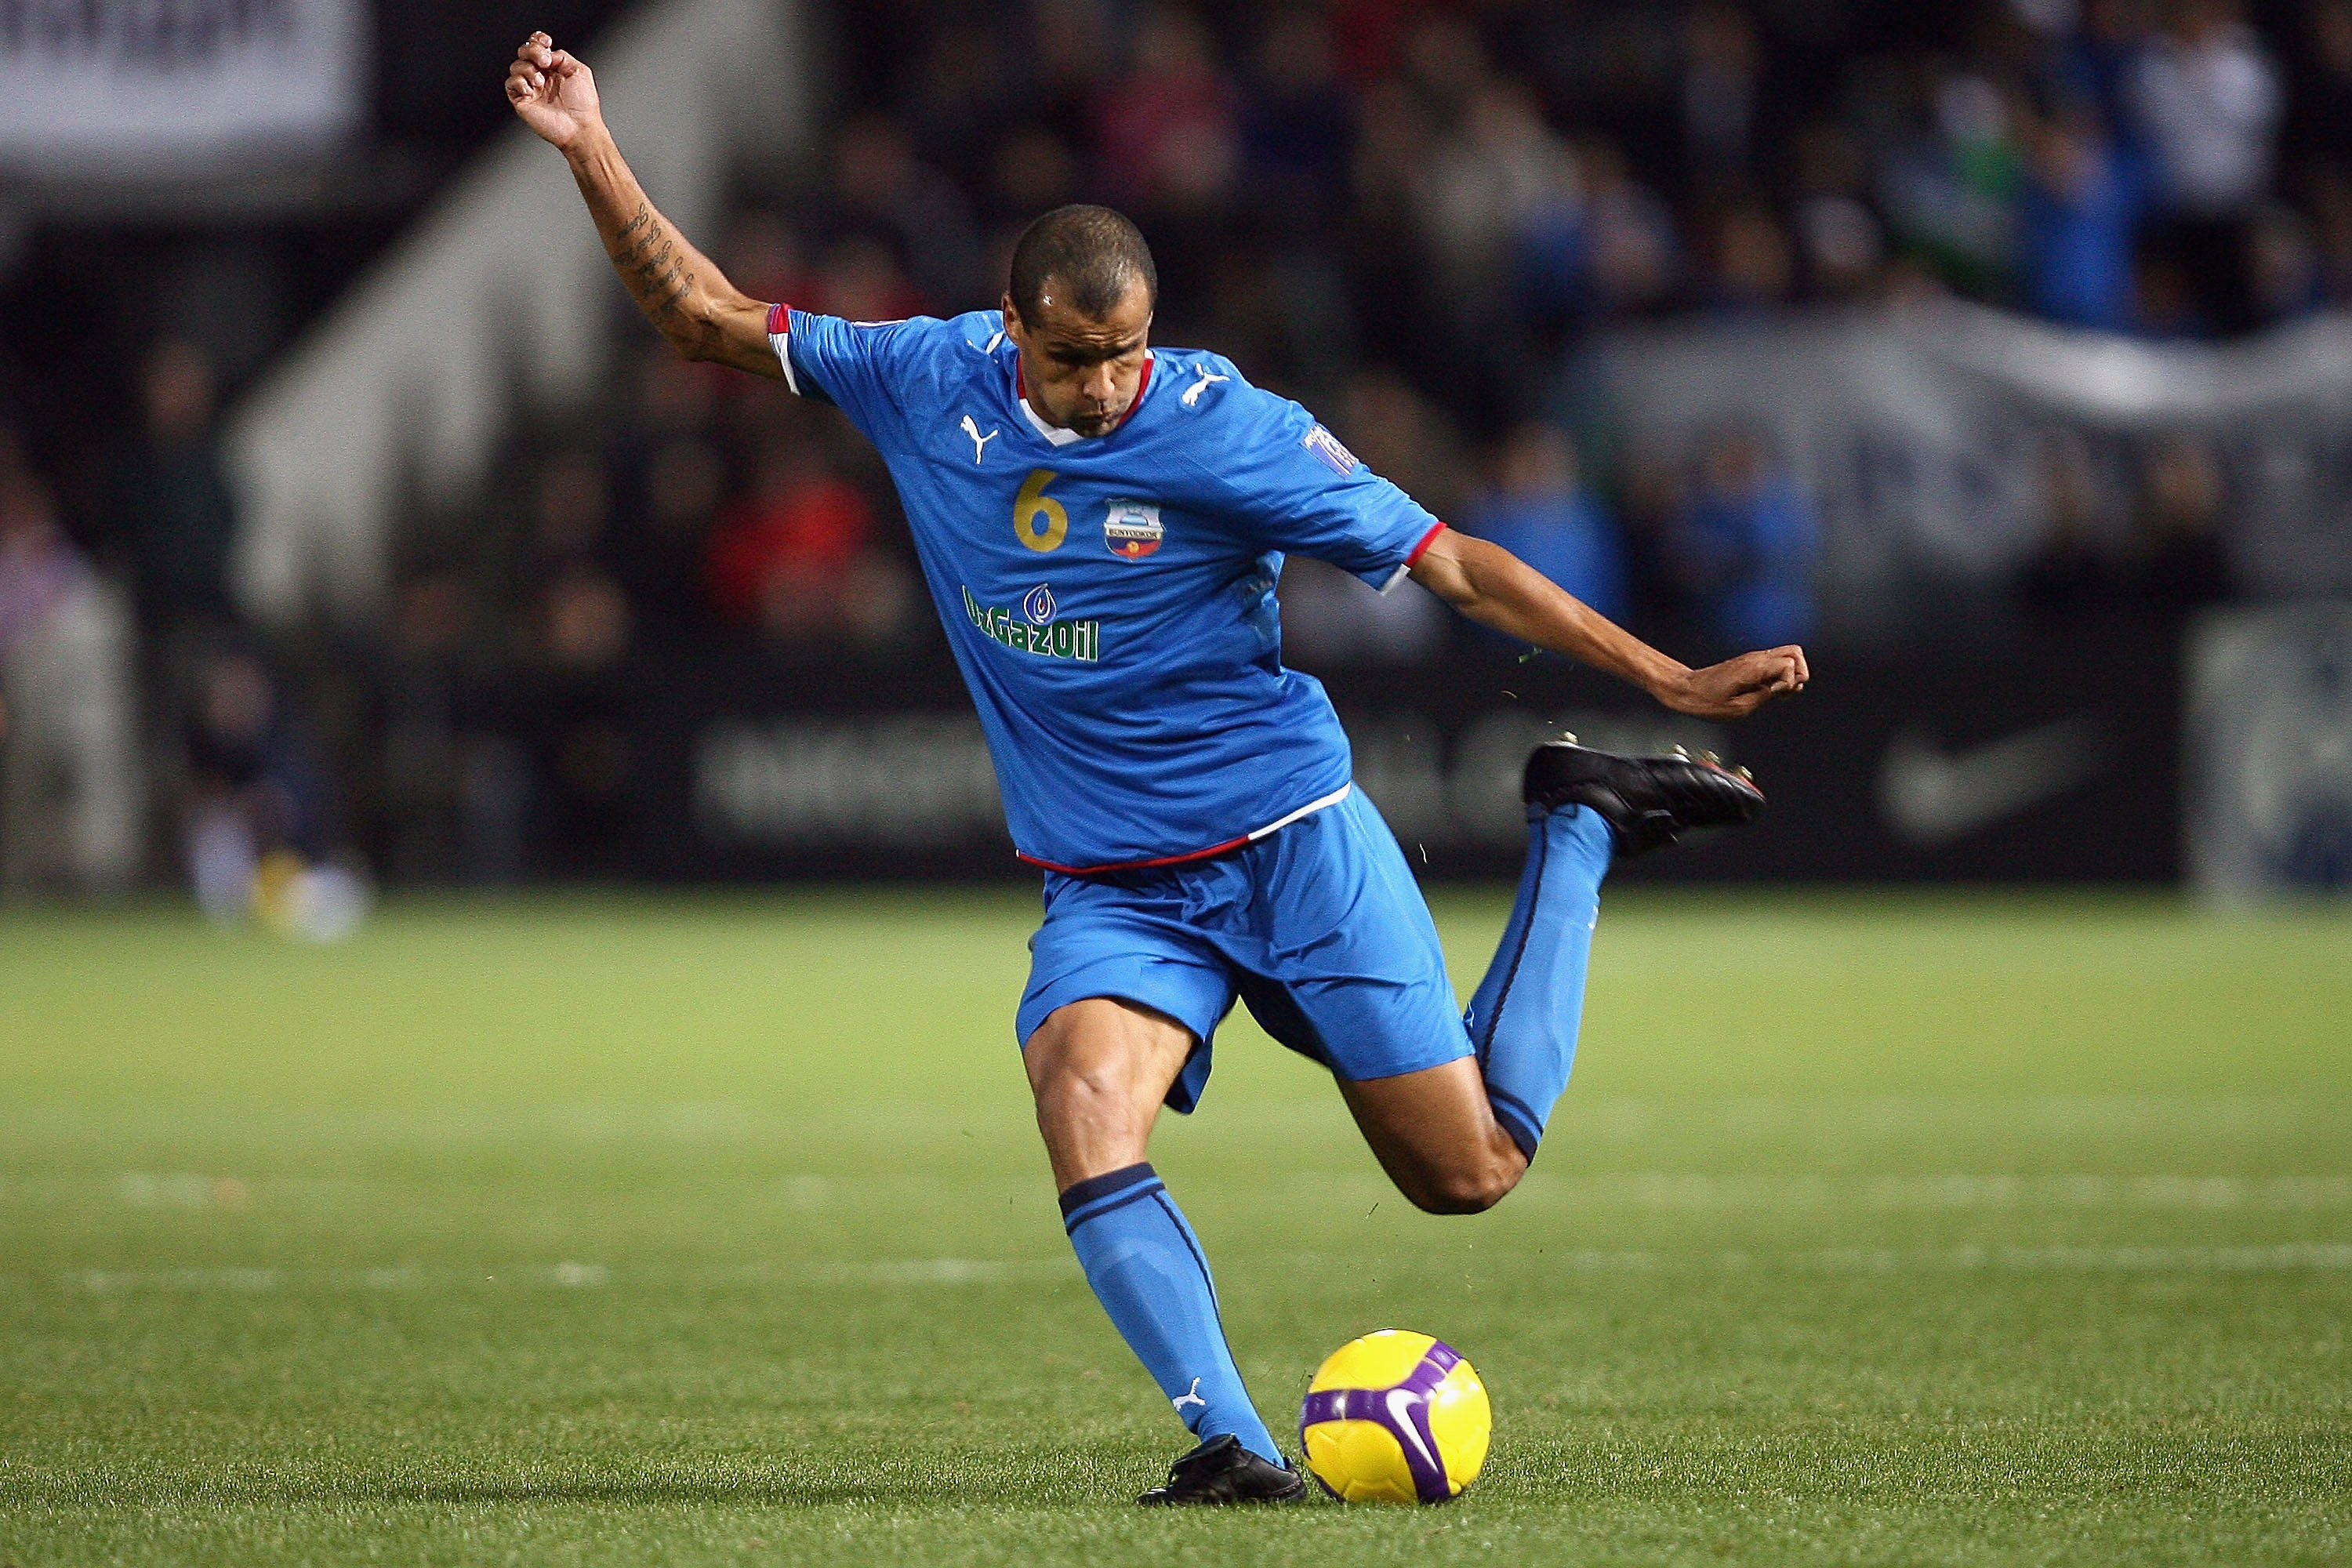 ADELAIDE, AUSTRALIA - OCTOBER 08:  Rivaldo of Bunyodkor kicks during the AFC Champions League semi-final first leg match between Adelaide United and Bunyodkor at Hindmarsh Stadium on October 8, 2008 in Adelaide, Australia.  (Photo by Simon Cross/Getty Ima